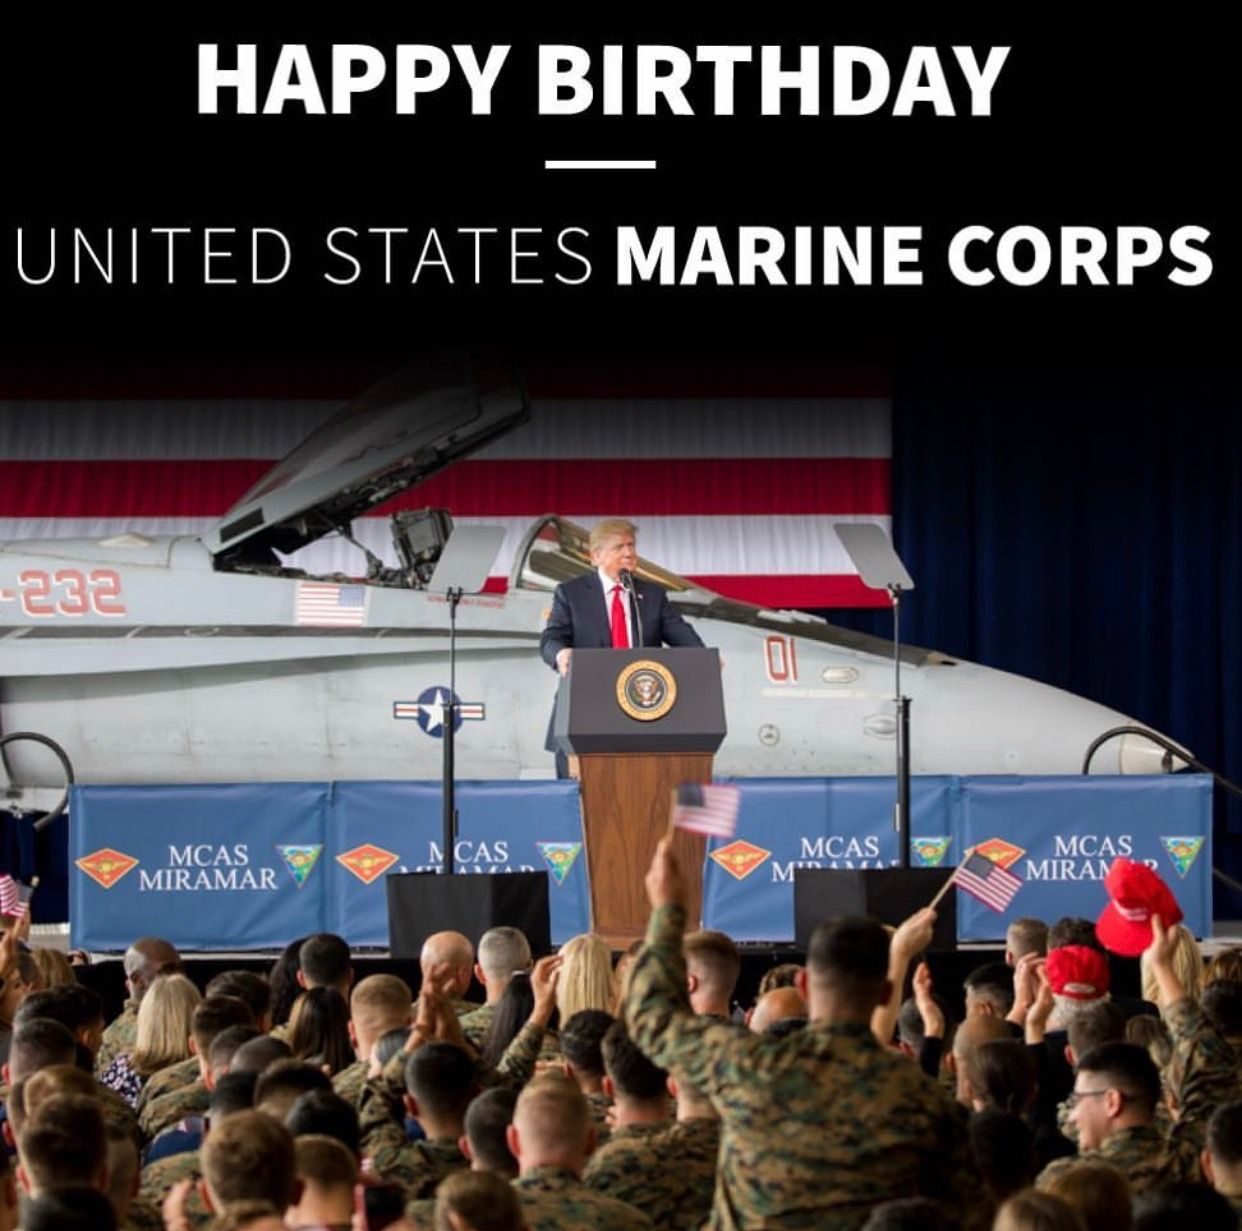 Pin by Kathryn Bender on U.S. Marine Corps! Marine corps